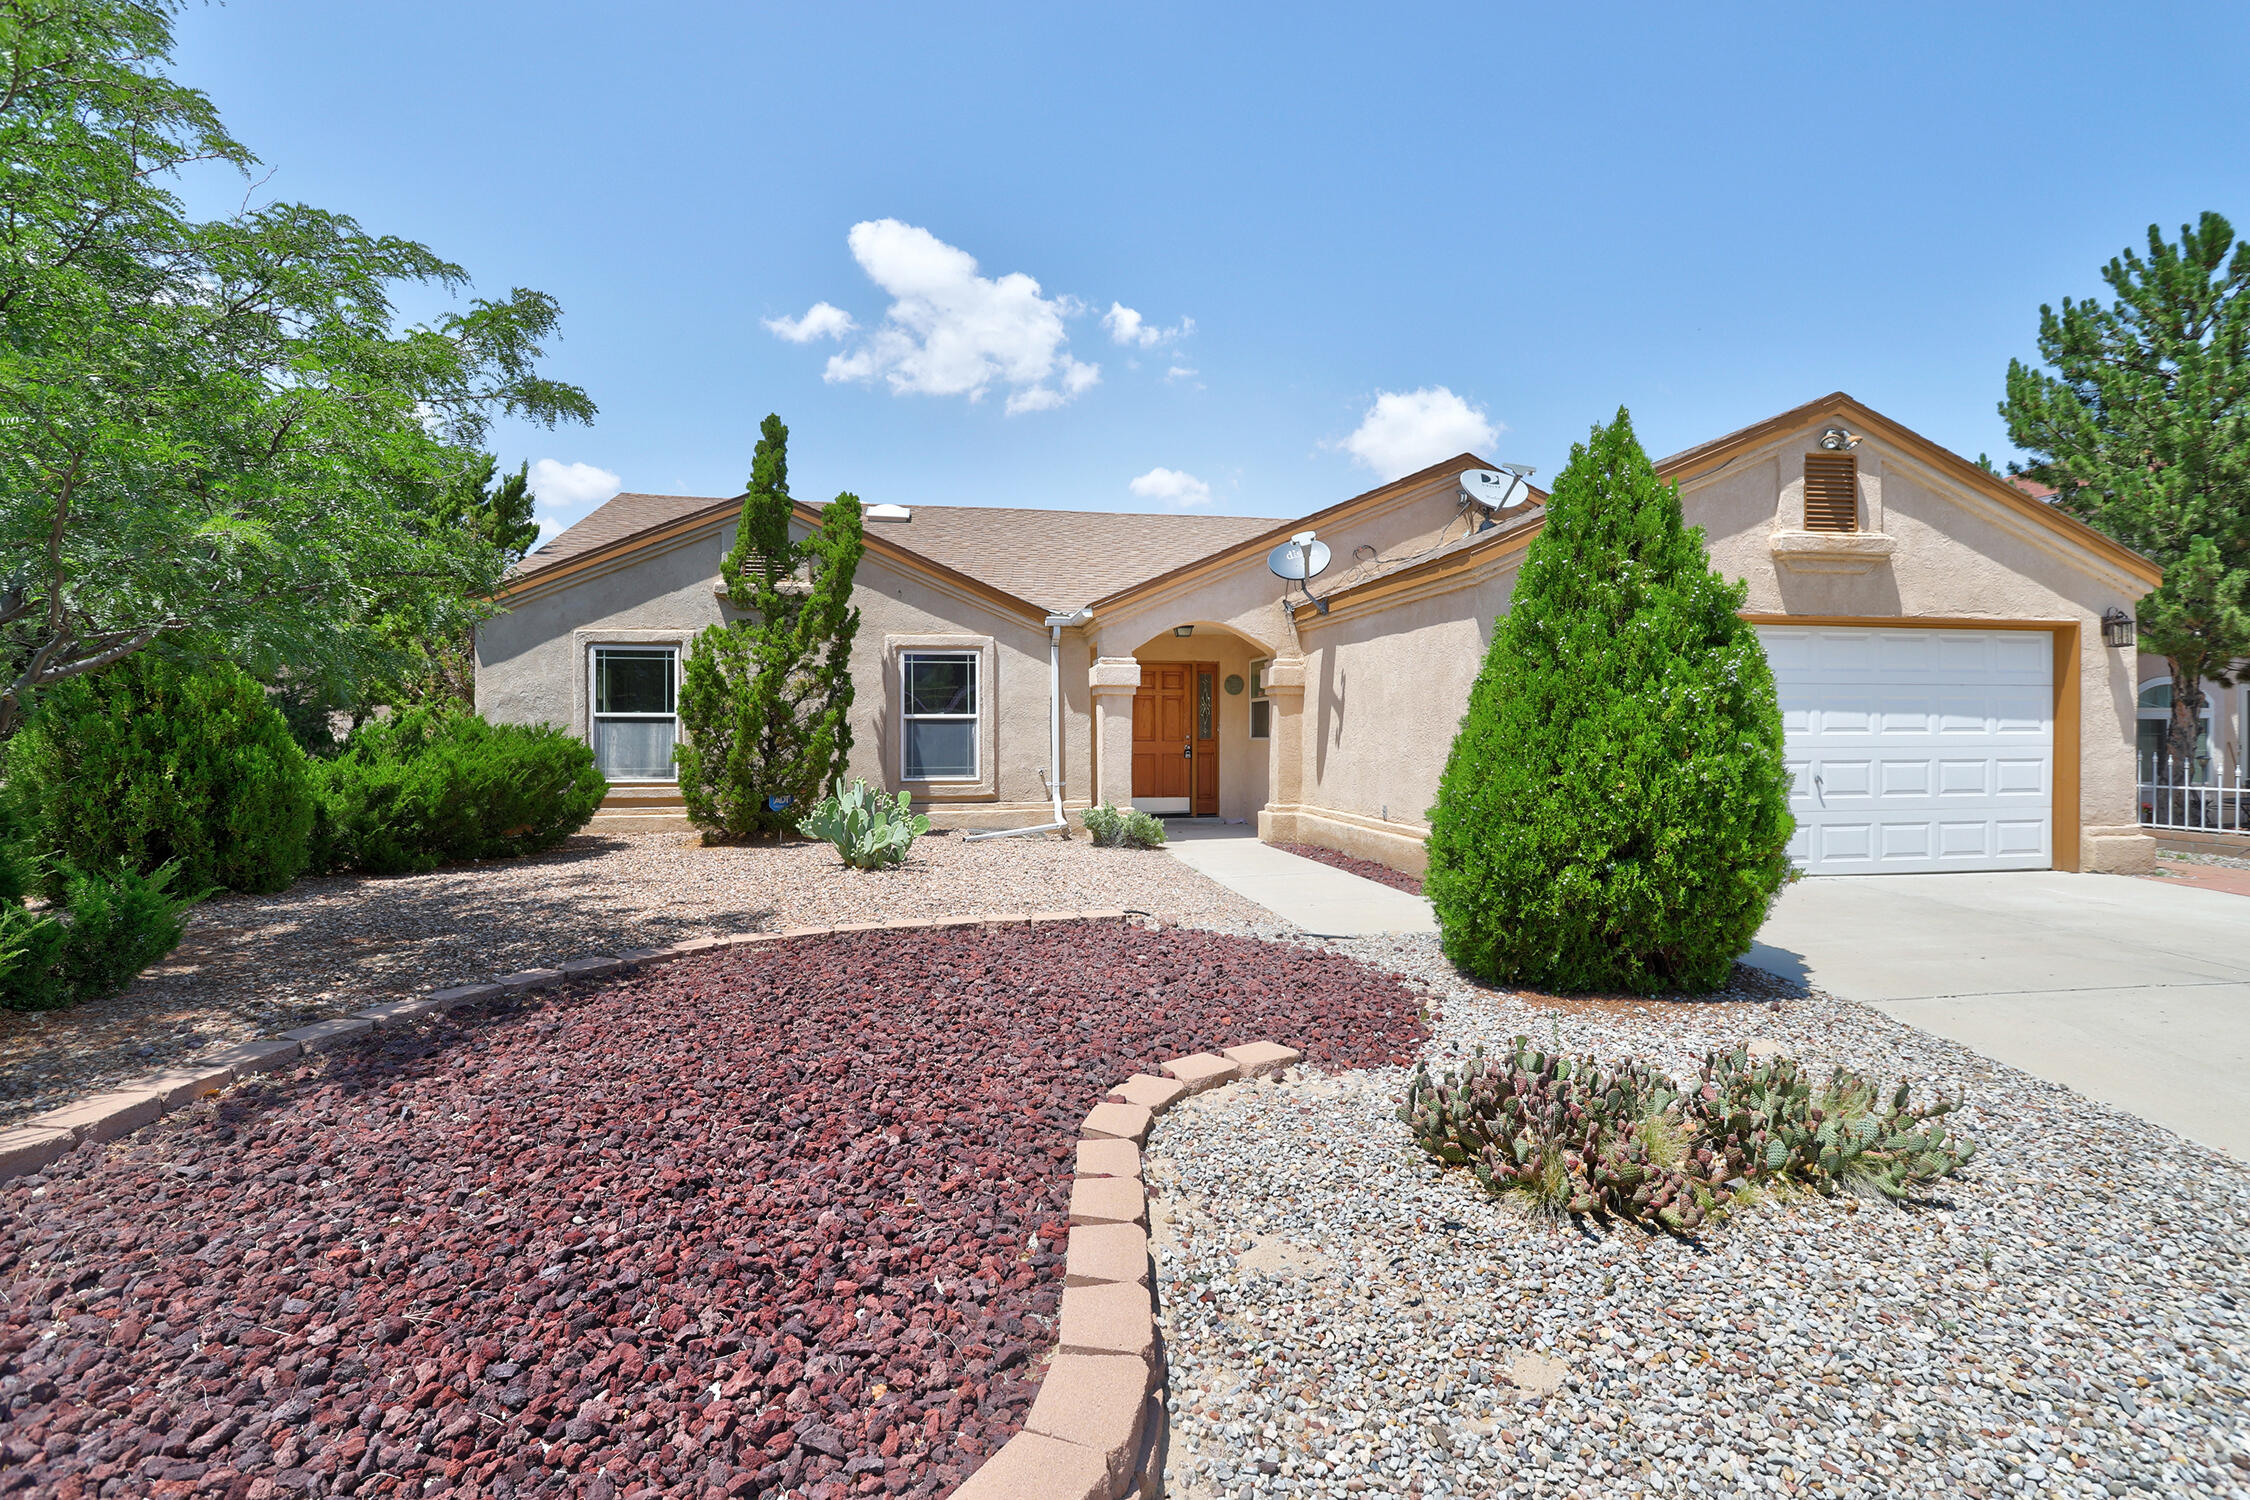 Move in Ready with Great floor plan.   New Paint, New carpet, New granite counter tops, New stainless steel appliances, New fixtures.  Property has open floor plan with mature landscaping and refrigerated air.